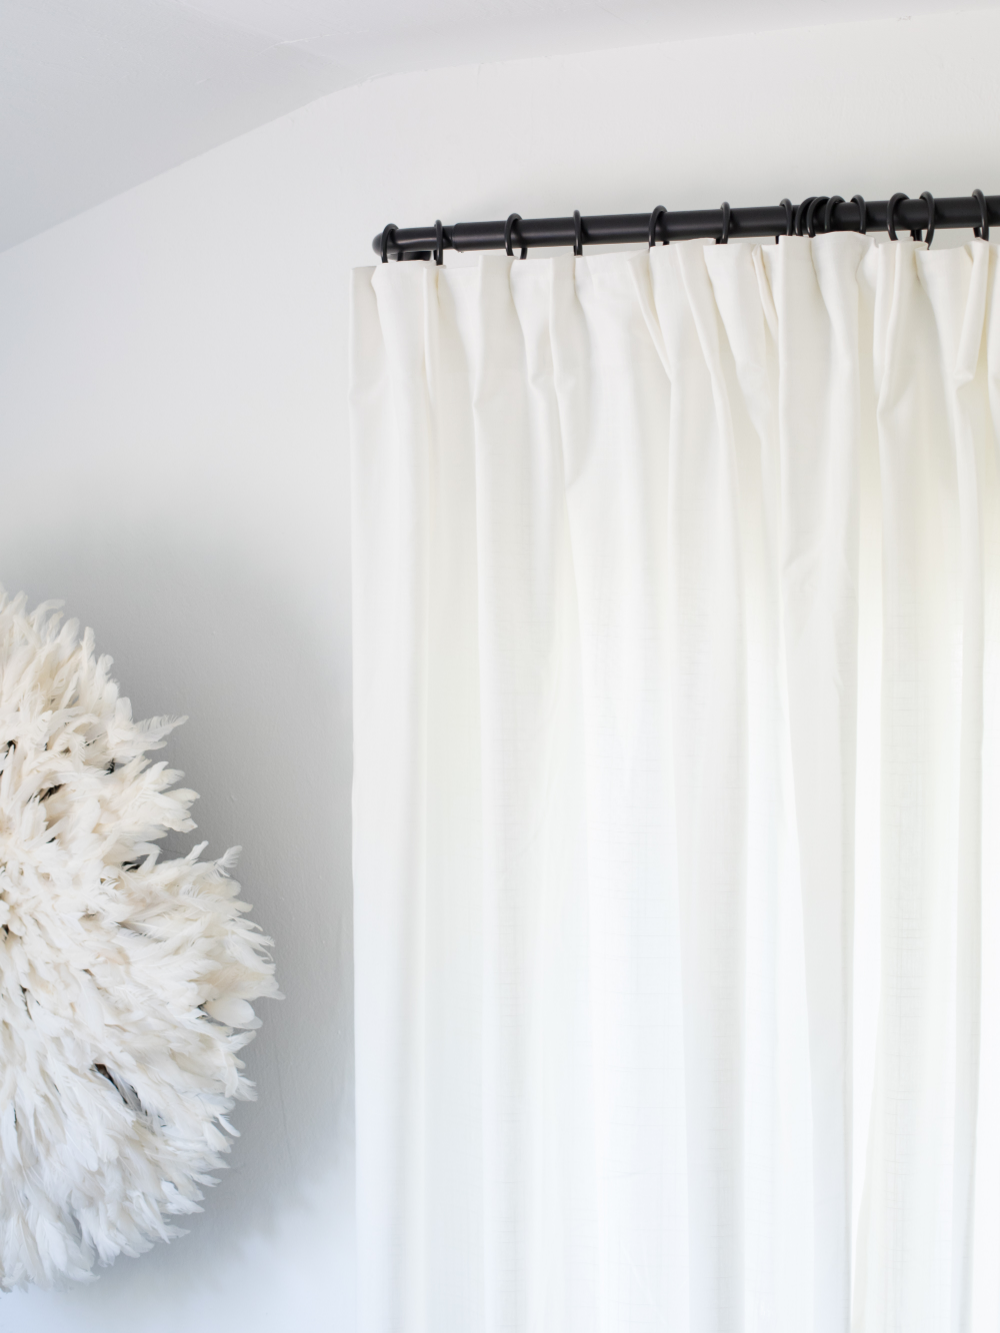 Ikea Kvartal Curtain In 2020: IKEA Hack: Pinched Pleat Curtains In 2020